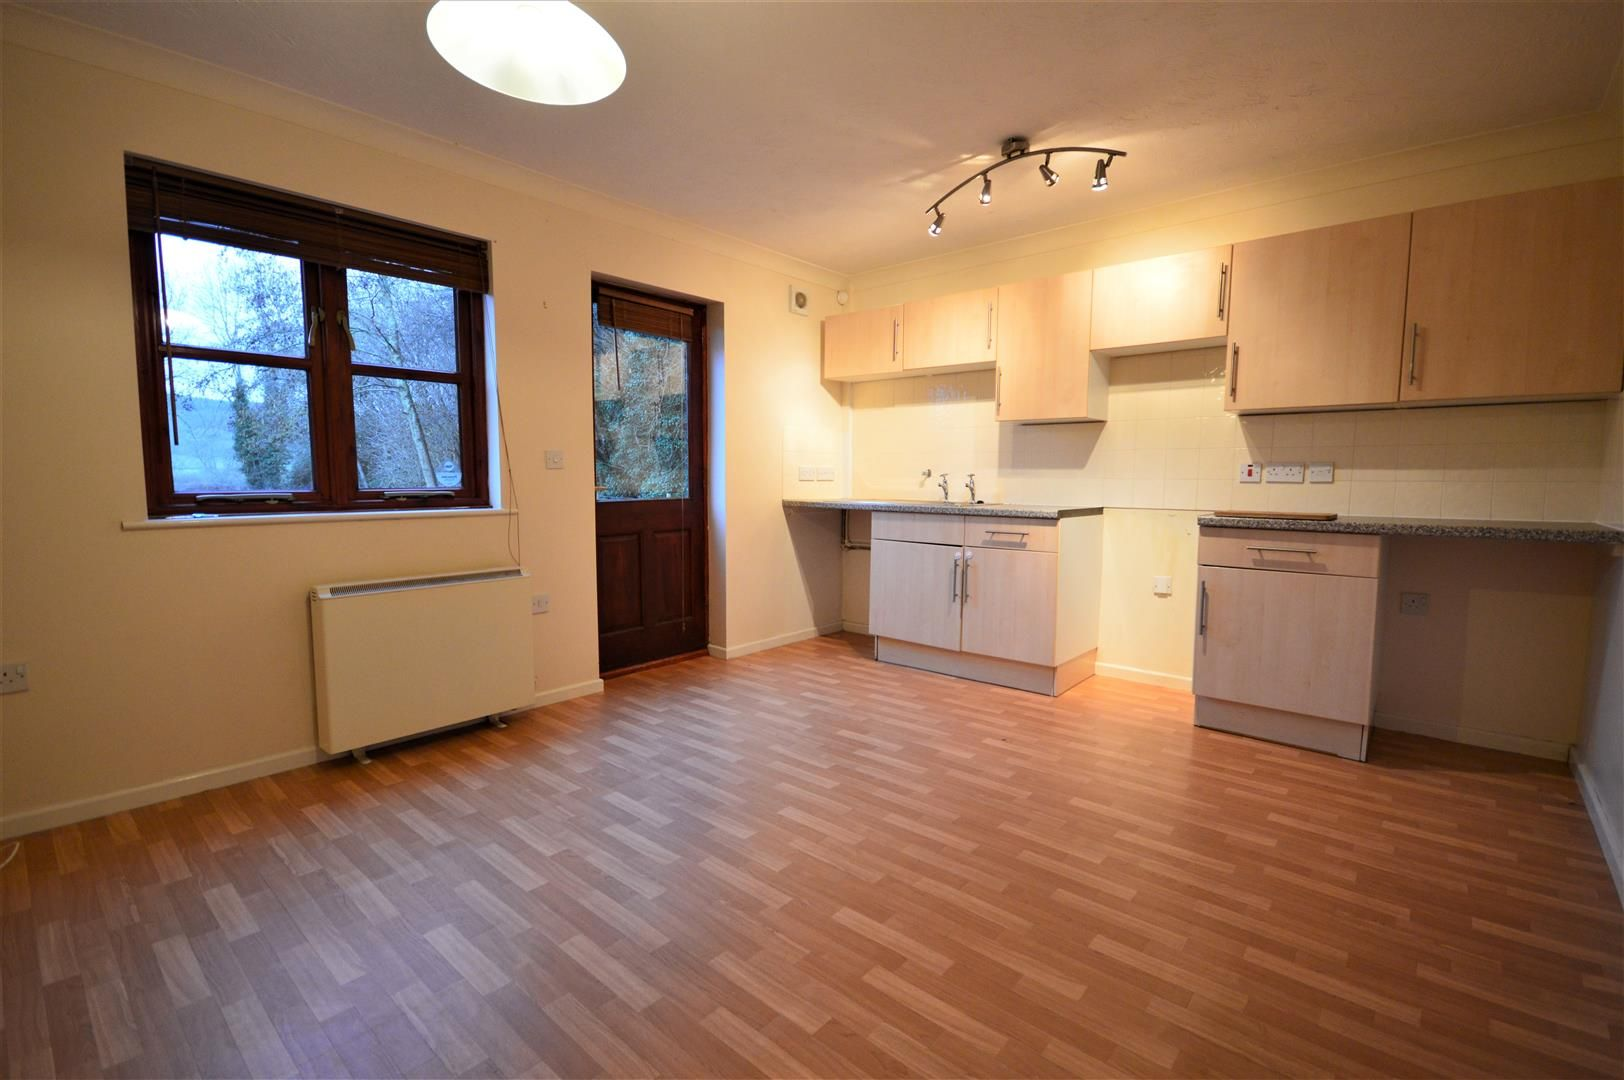 2 bed end-of-terrace to rent in Wigmore  - Property Image 1